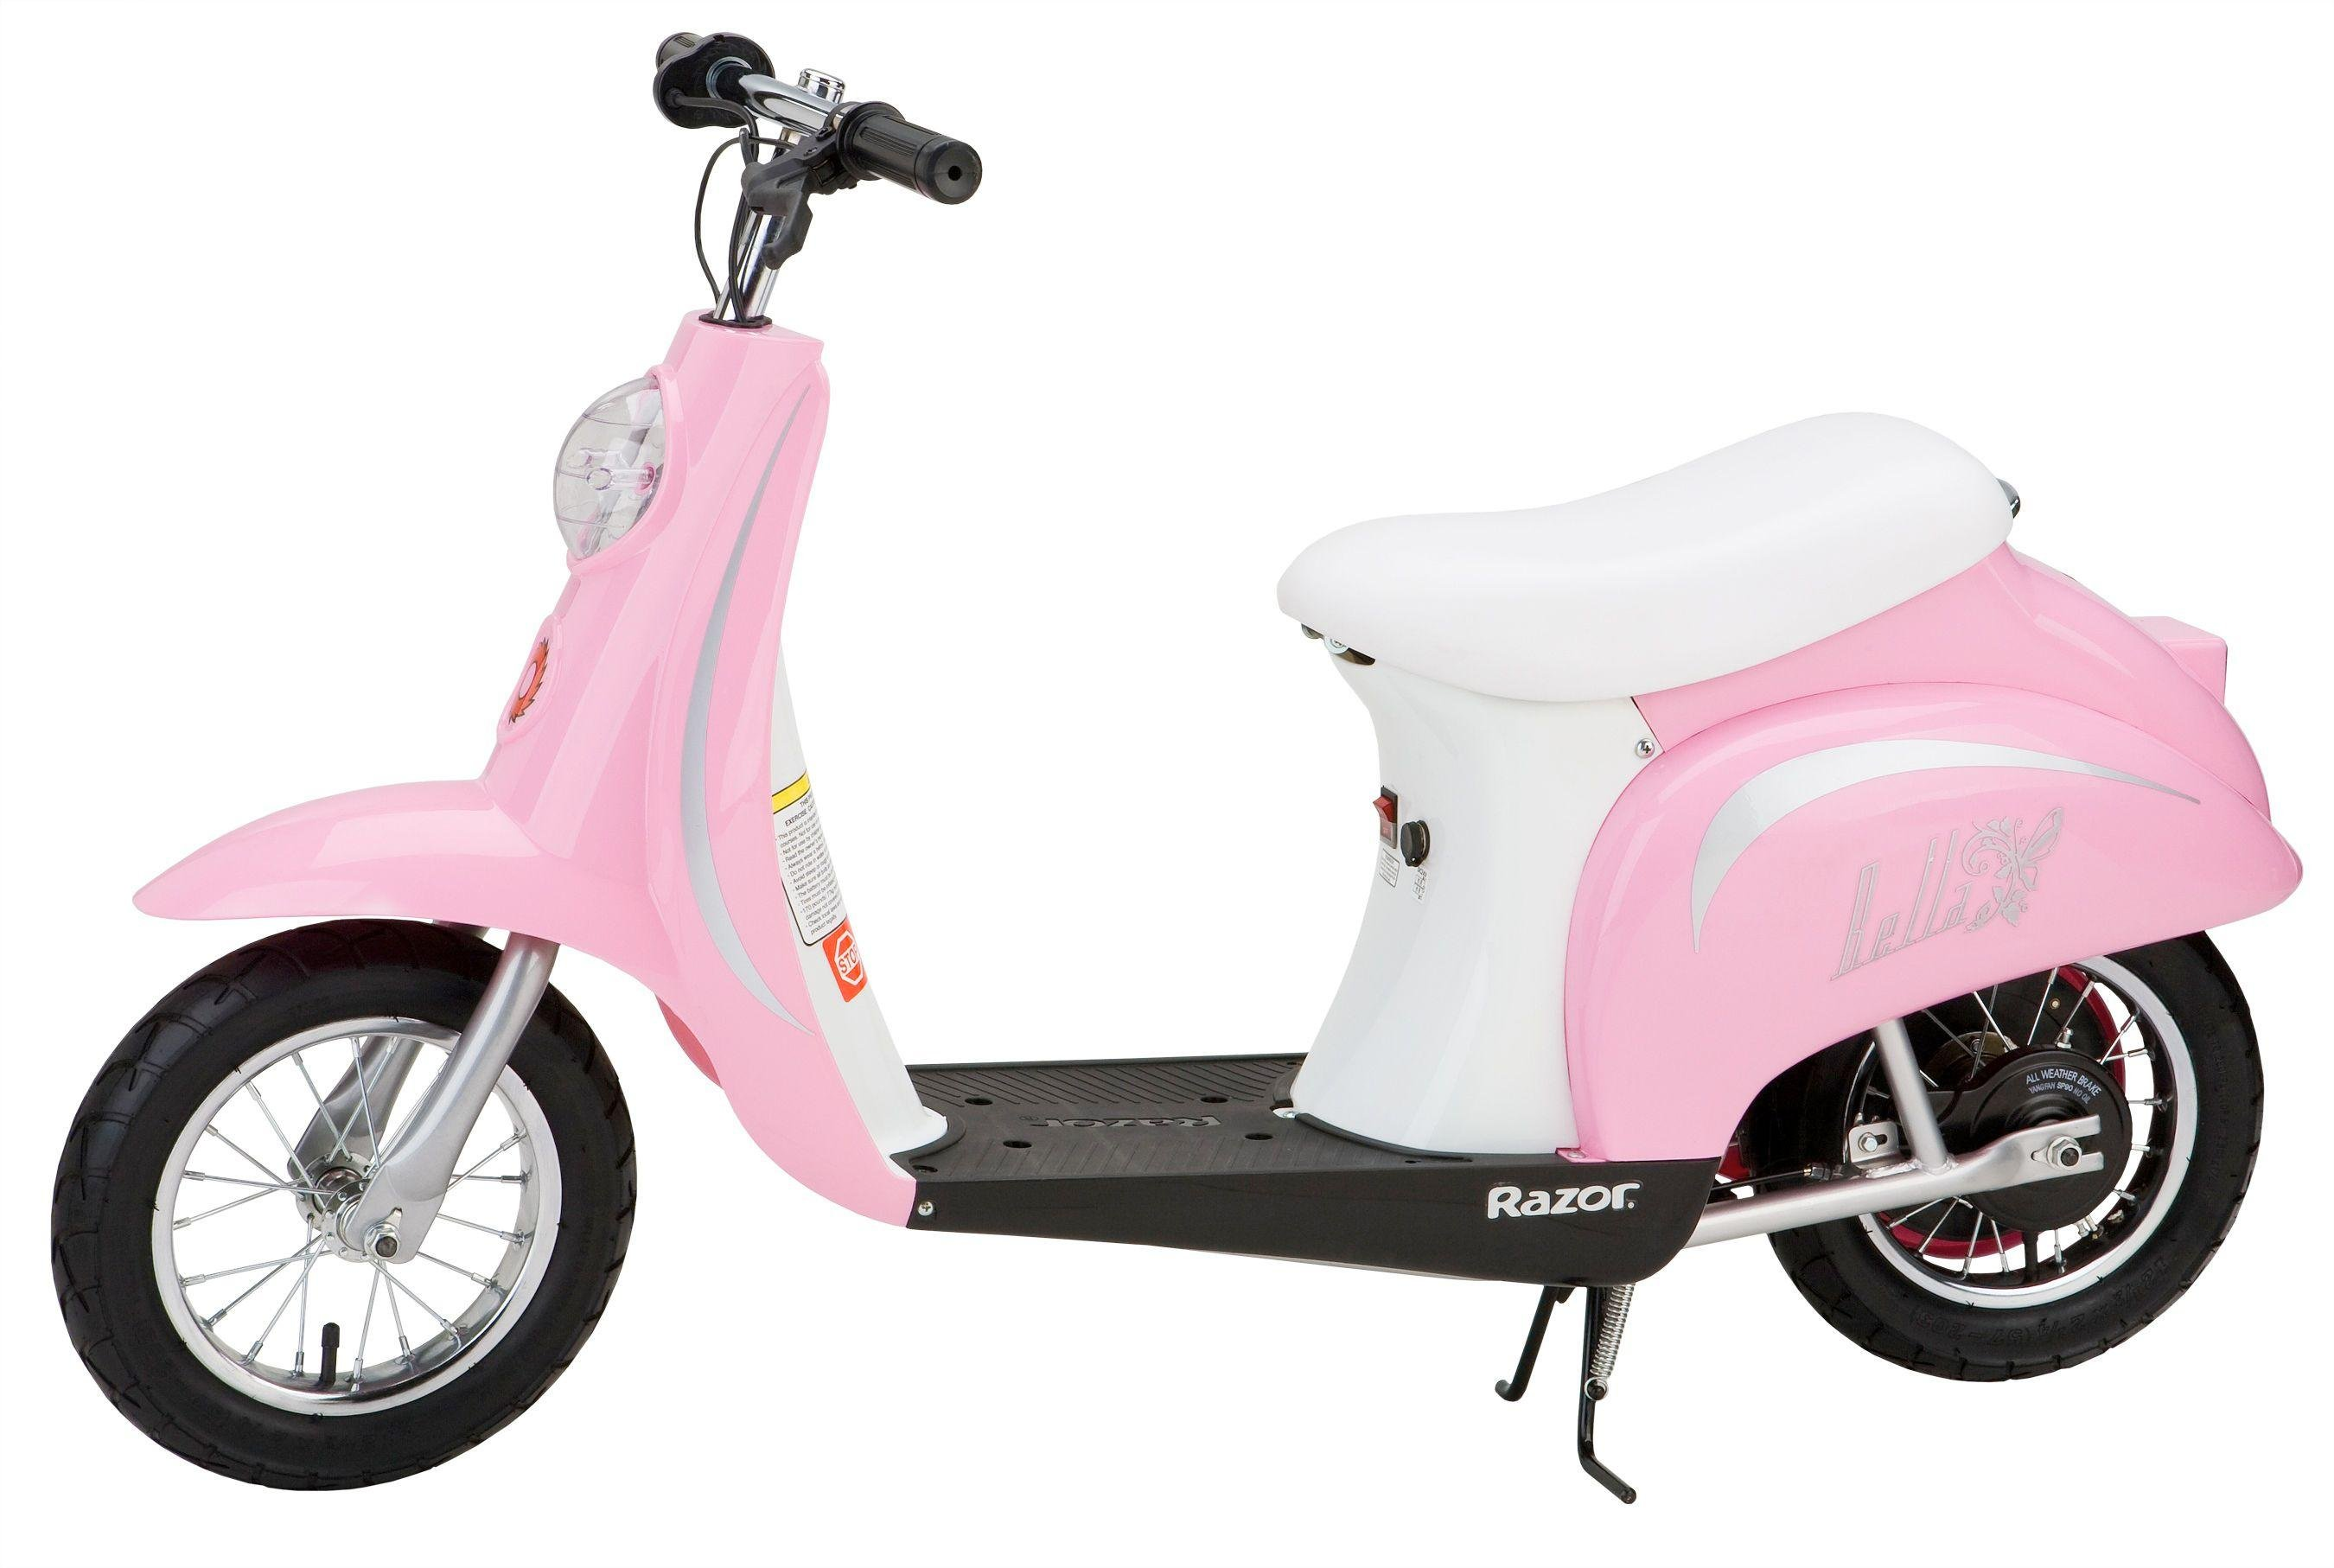 Buy Razor Pocket Mod Electric Scooter Pink Battery Powered